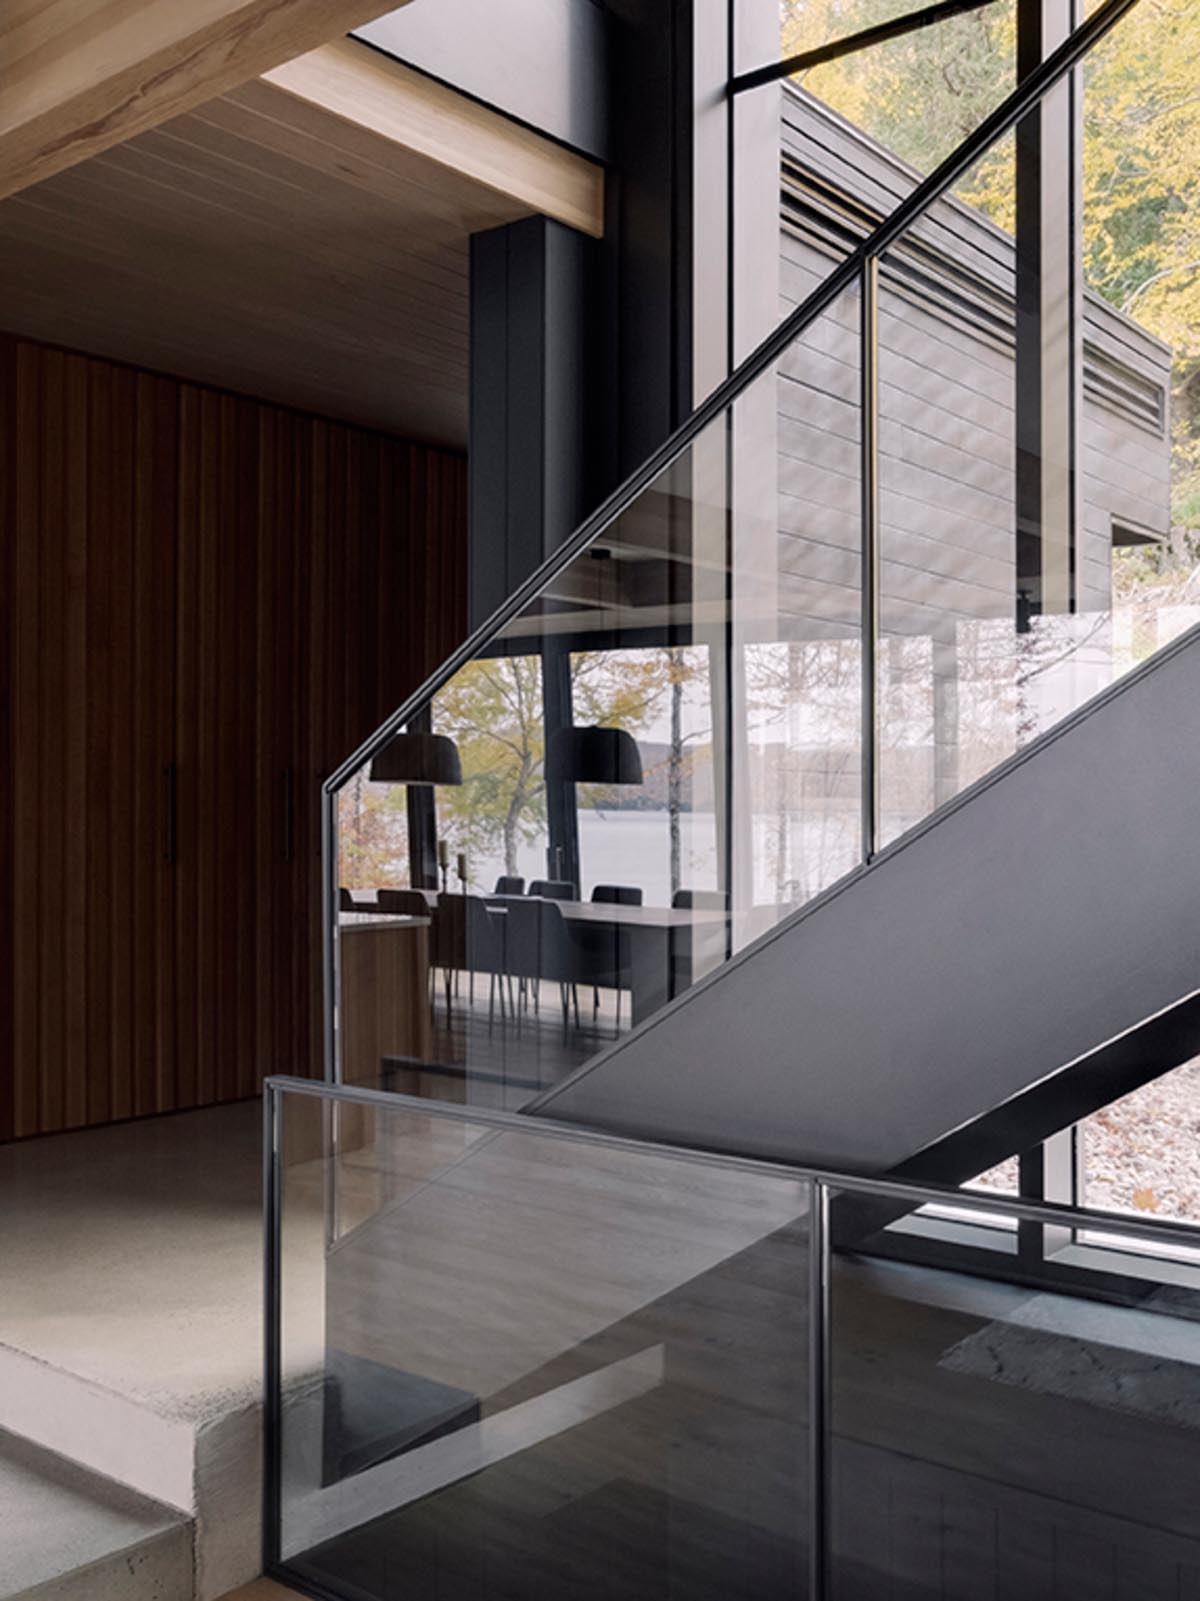 Steel and glass stairs connect the various levels of the home, with the adjacent windows providing ample natural light.